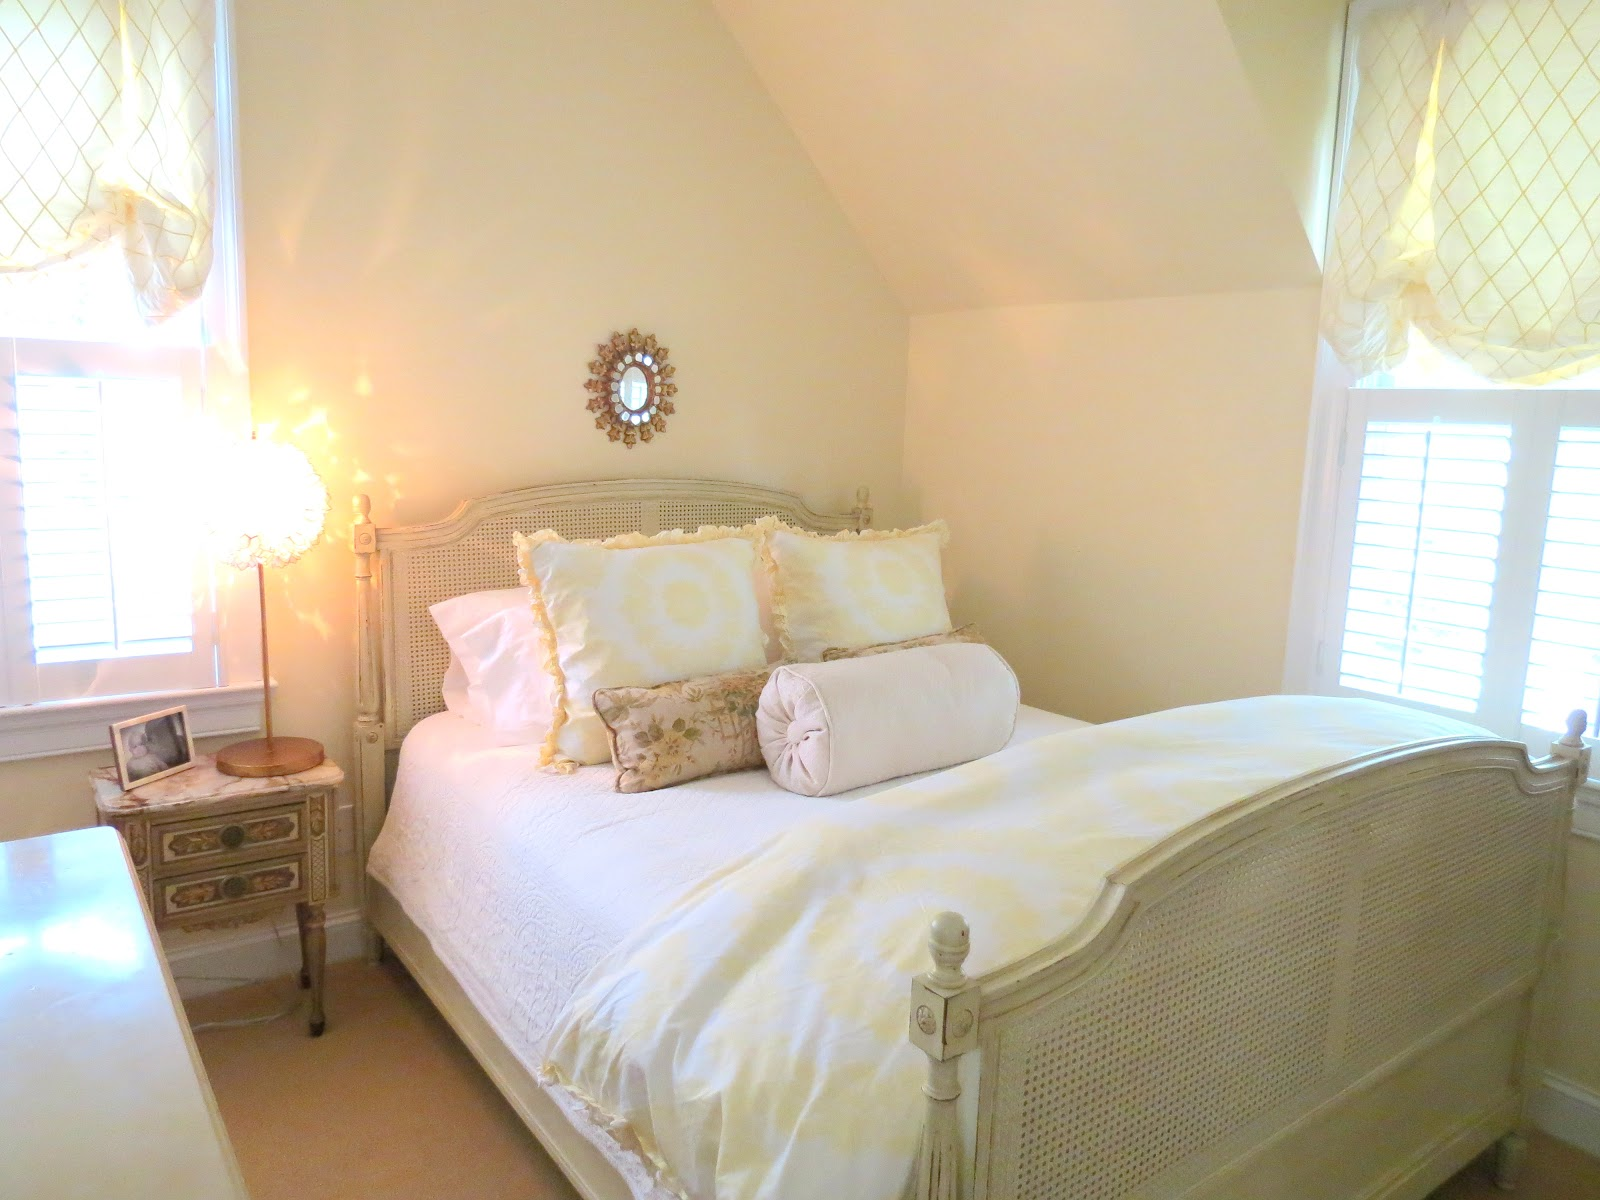 Modern french bedroom decor - White And Yellow Bedroom French Country